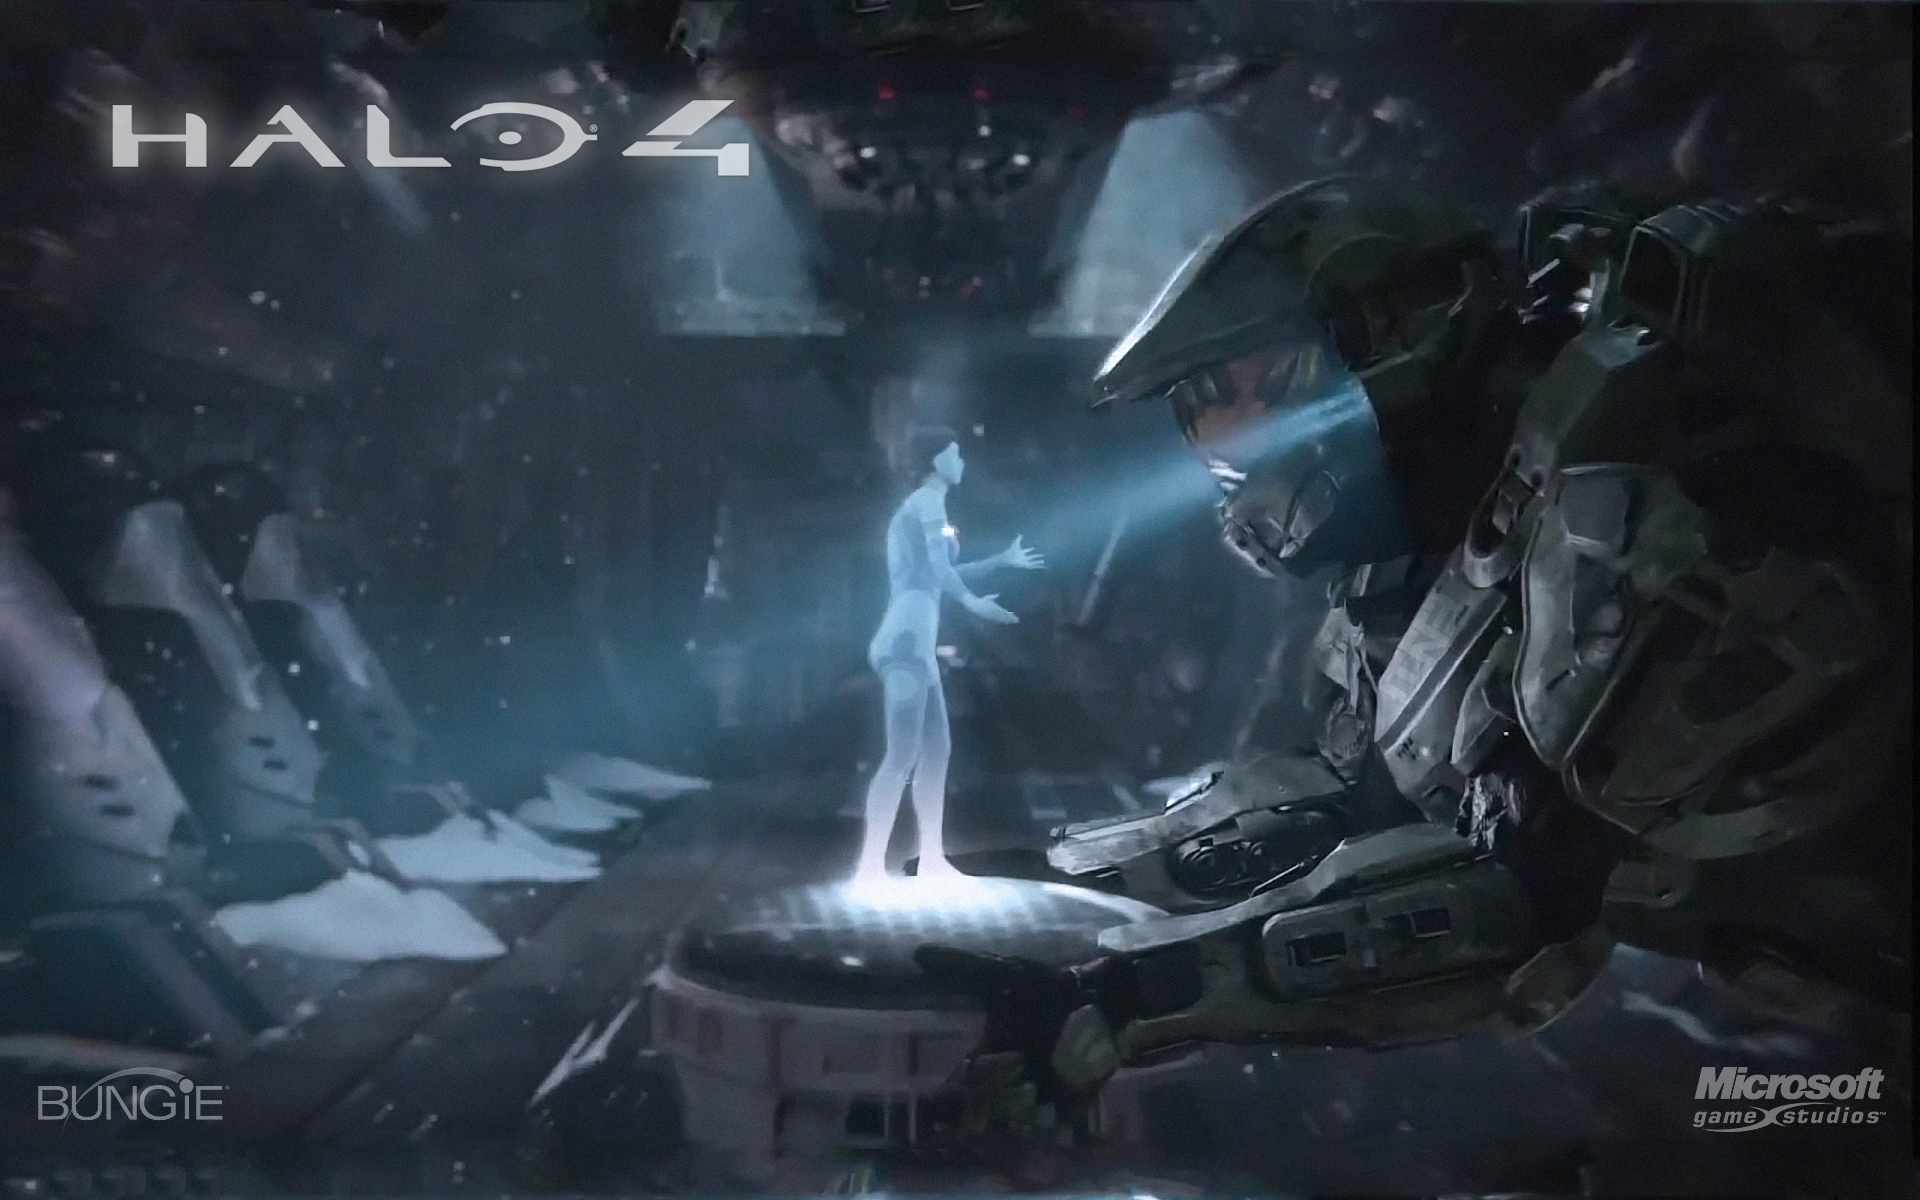 Download Halo 4 Wallpaper HD By Ockre 2979 Full Size 1920x1200